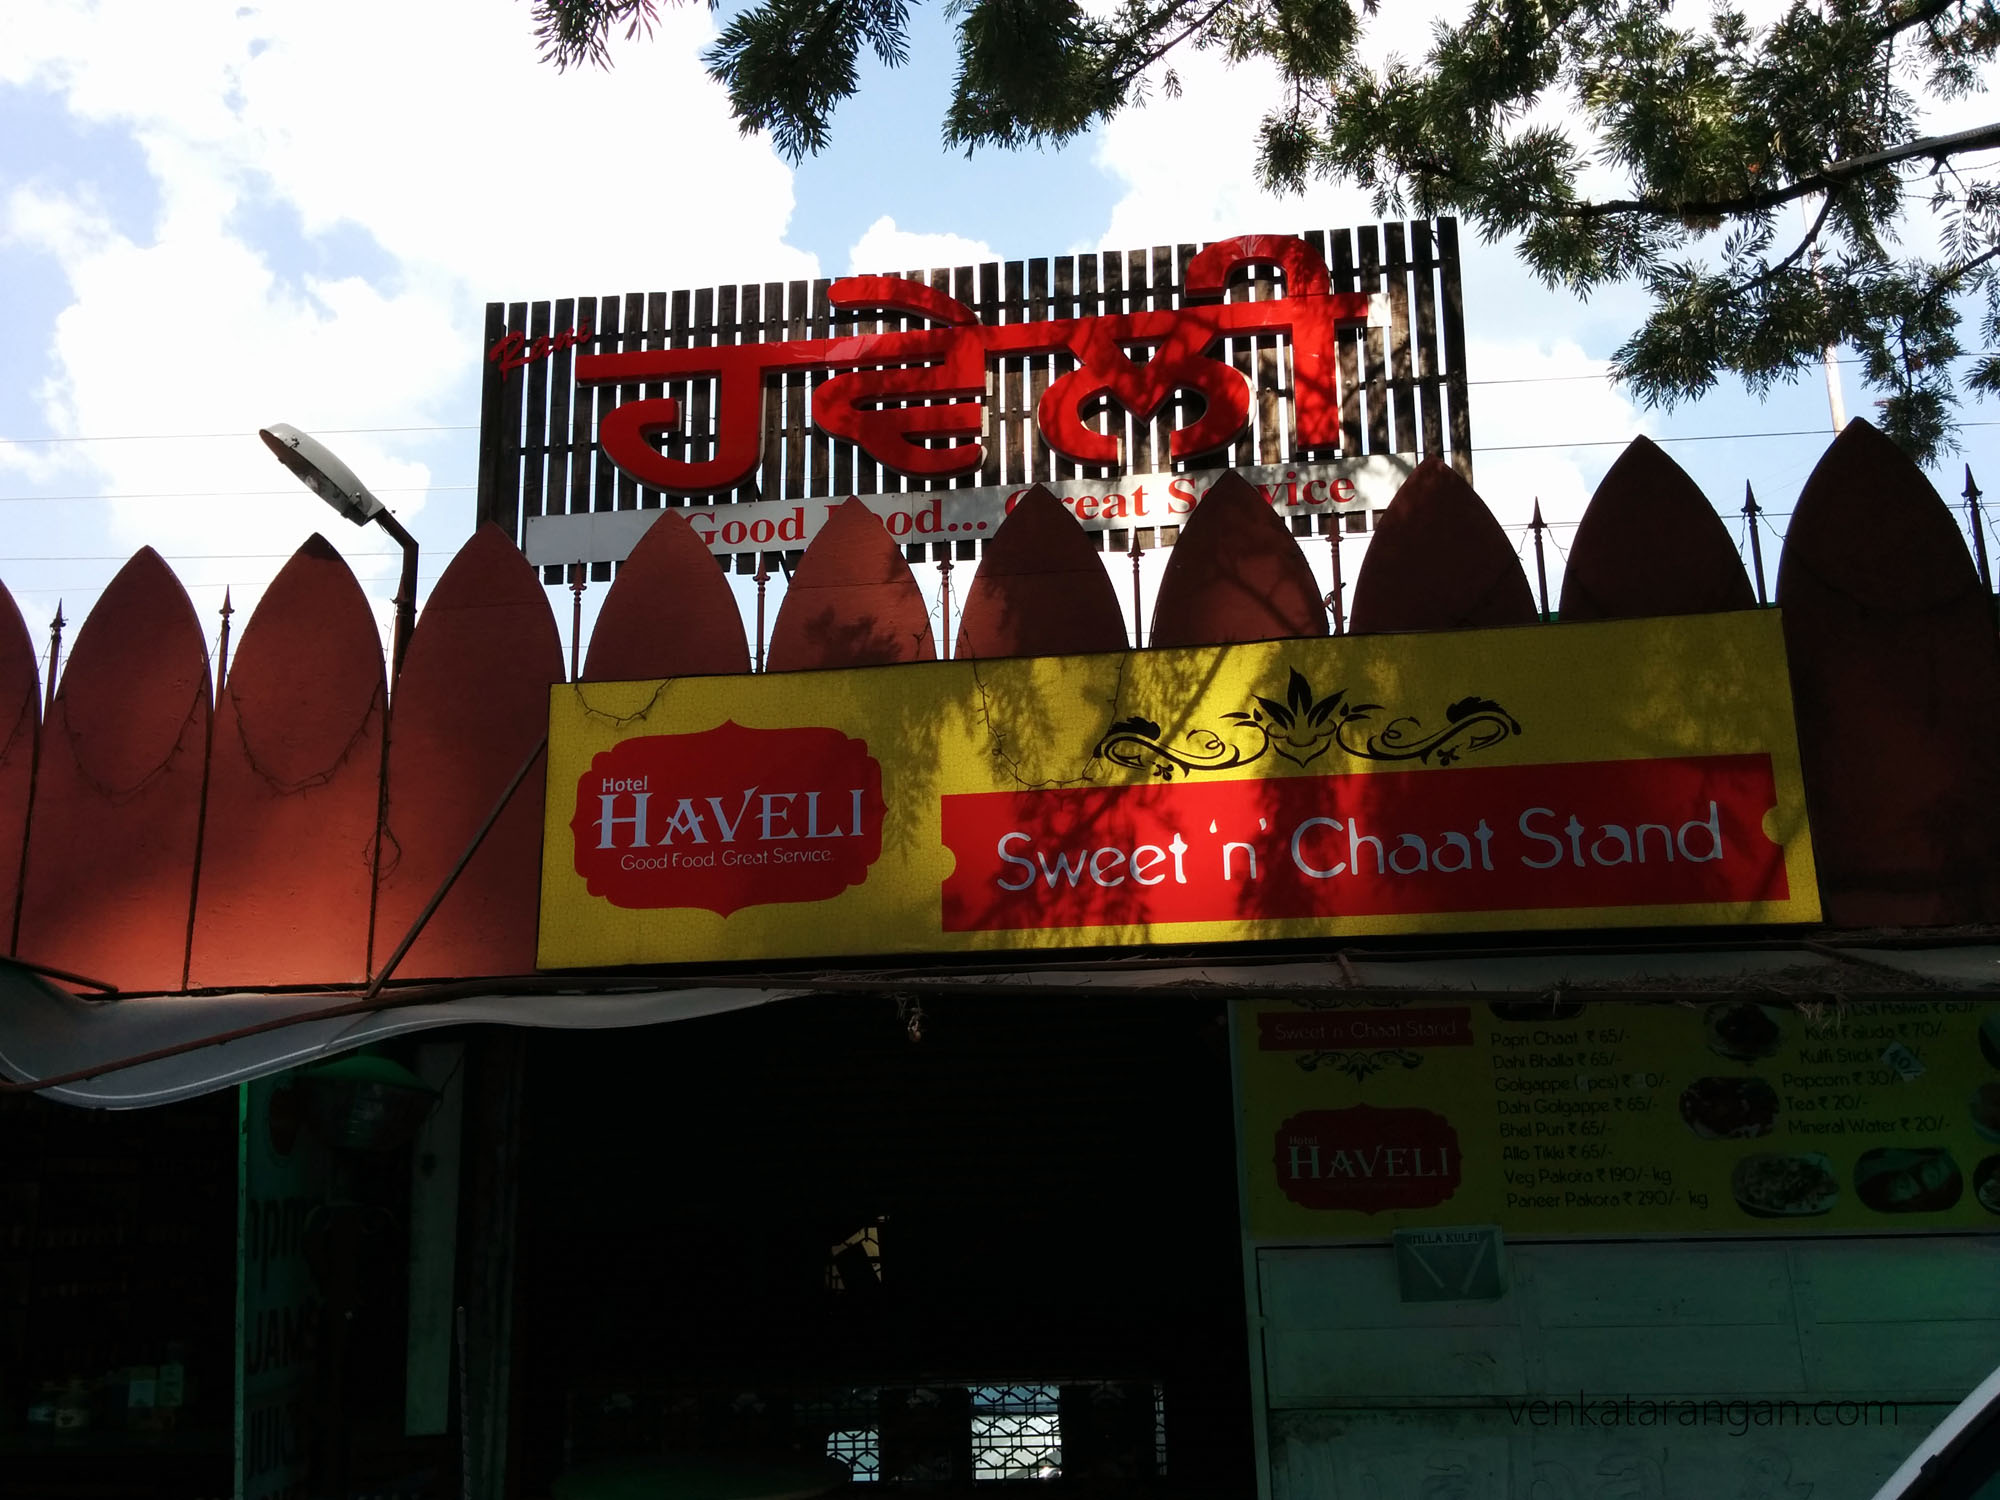 Hotel Haveli in NH-22, Dharampur, Solan - Punjabi Food - Enroute to Simla